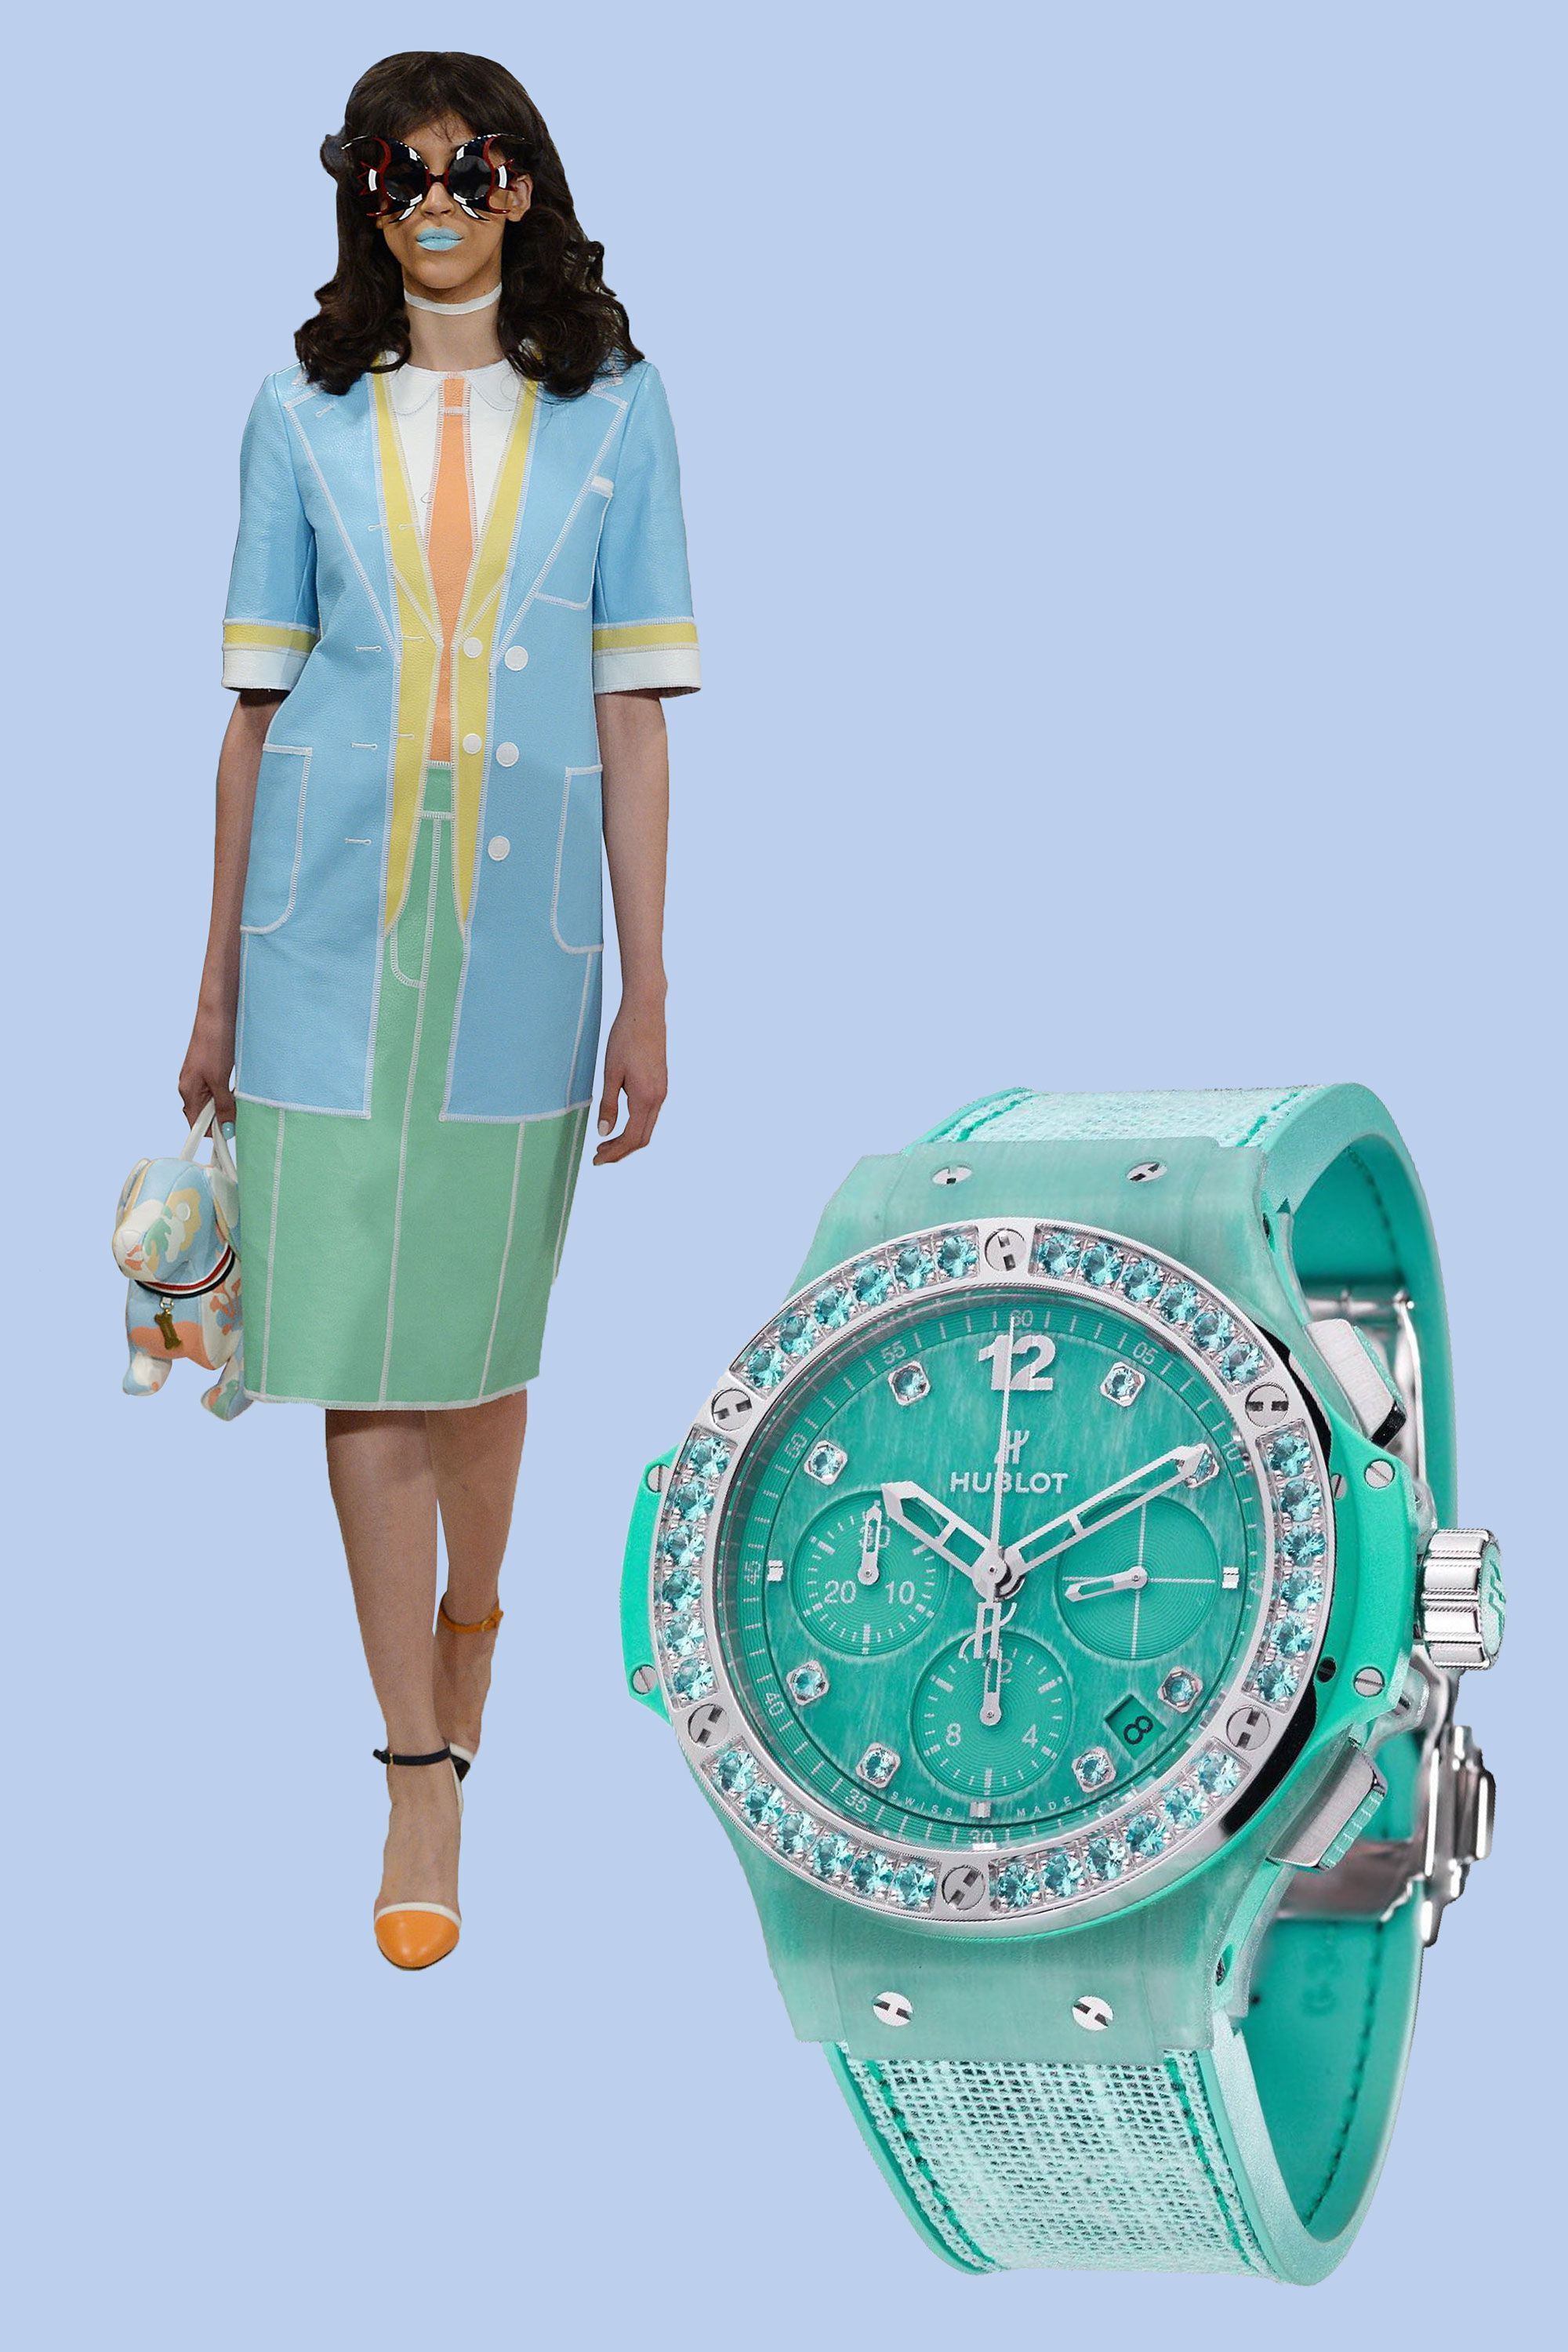 "<p>For spring, designer Thom Browne channeled poolside glamour with <em data-redactor-tag=""em"" data-verified=""redactor"">trompe l'oeil </em>effects for a majorly whimsical collection. Similar in spirit, Hublot summer-ready pieces combine linen and resin with matching blue topaz stones on the dial and bezel.</p><p><em data-redactor-tag=""em"" data-verified=""redactor"">Big Bang Turquoise Linen, $15,700, </em><a href=""http://www.hublot.com/en/collection/big-bang/big-bang-turquoise-linen-41mm"" target=""_blank"" data-tracking-id=""recirc-text-link""><em data-redactor-tag=""em"" data-verified=""redactor"">hublot.com</em></a></p>"